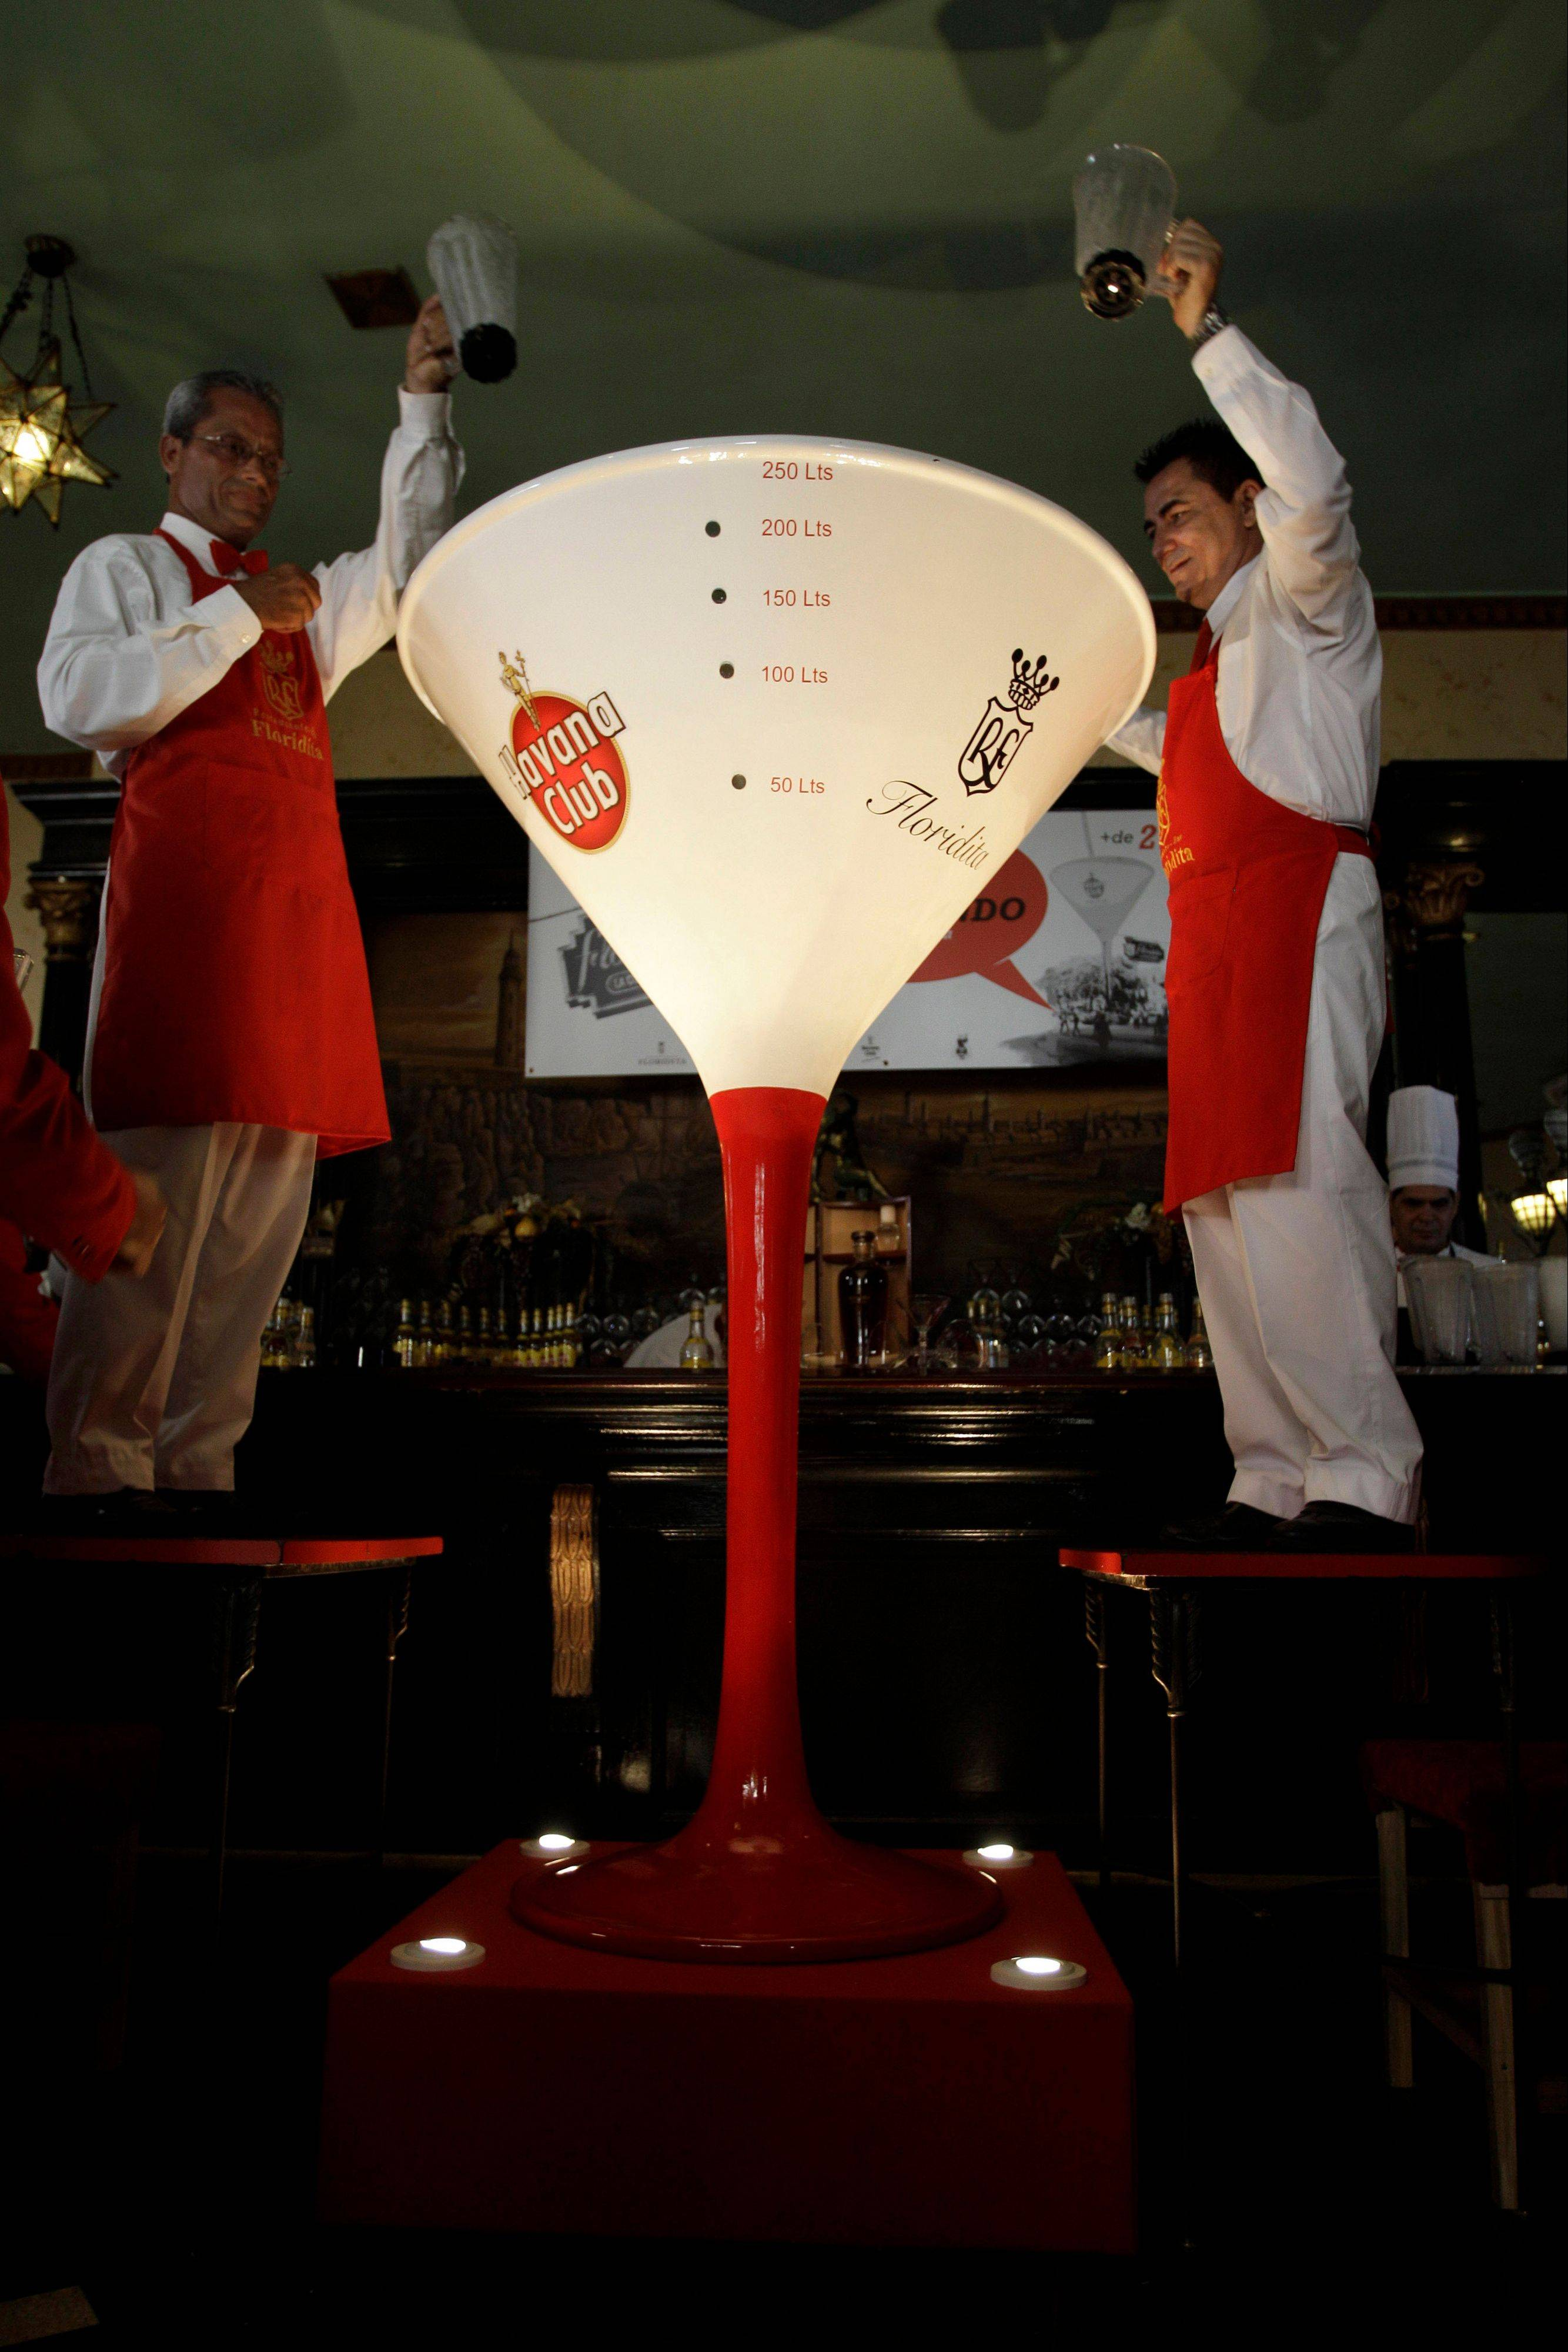 Standing on a wooden platform, Eduardo Bautista, right and Labrador Ahmed hold up empty pitchers Saturday after filling an oversized fiber-composite cocktail glass with daiquiris at El Floridita tavern in Old Havana, Cuba.